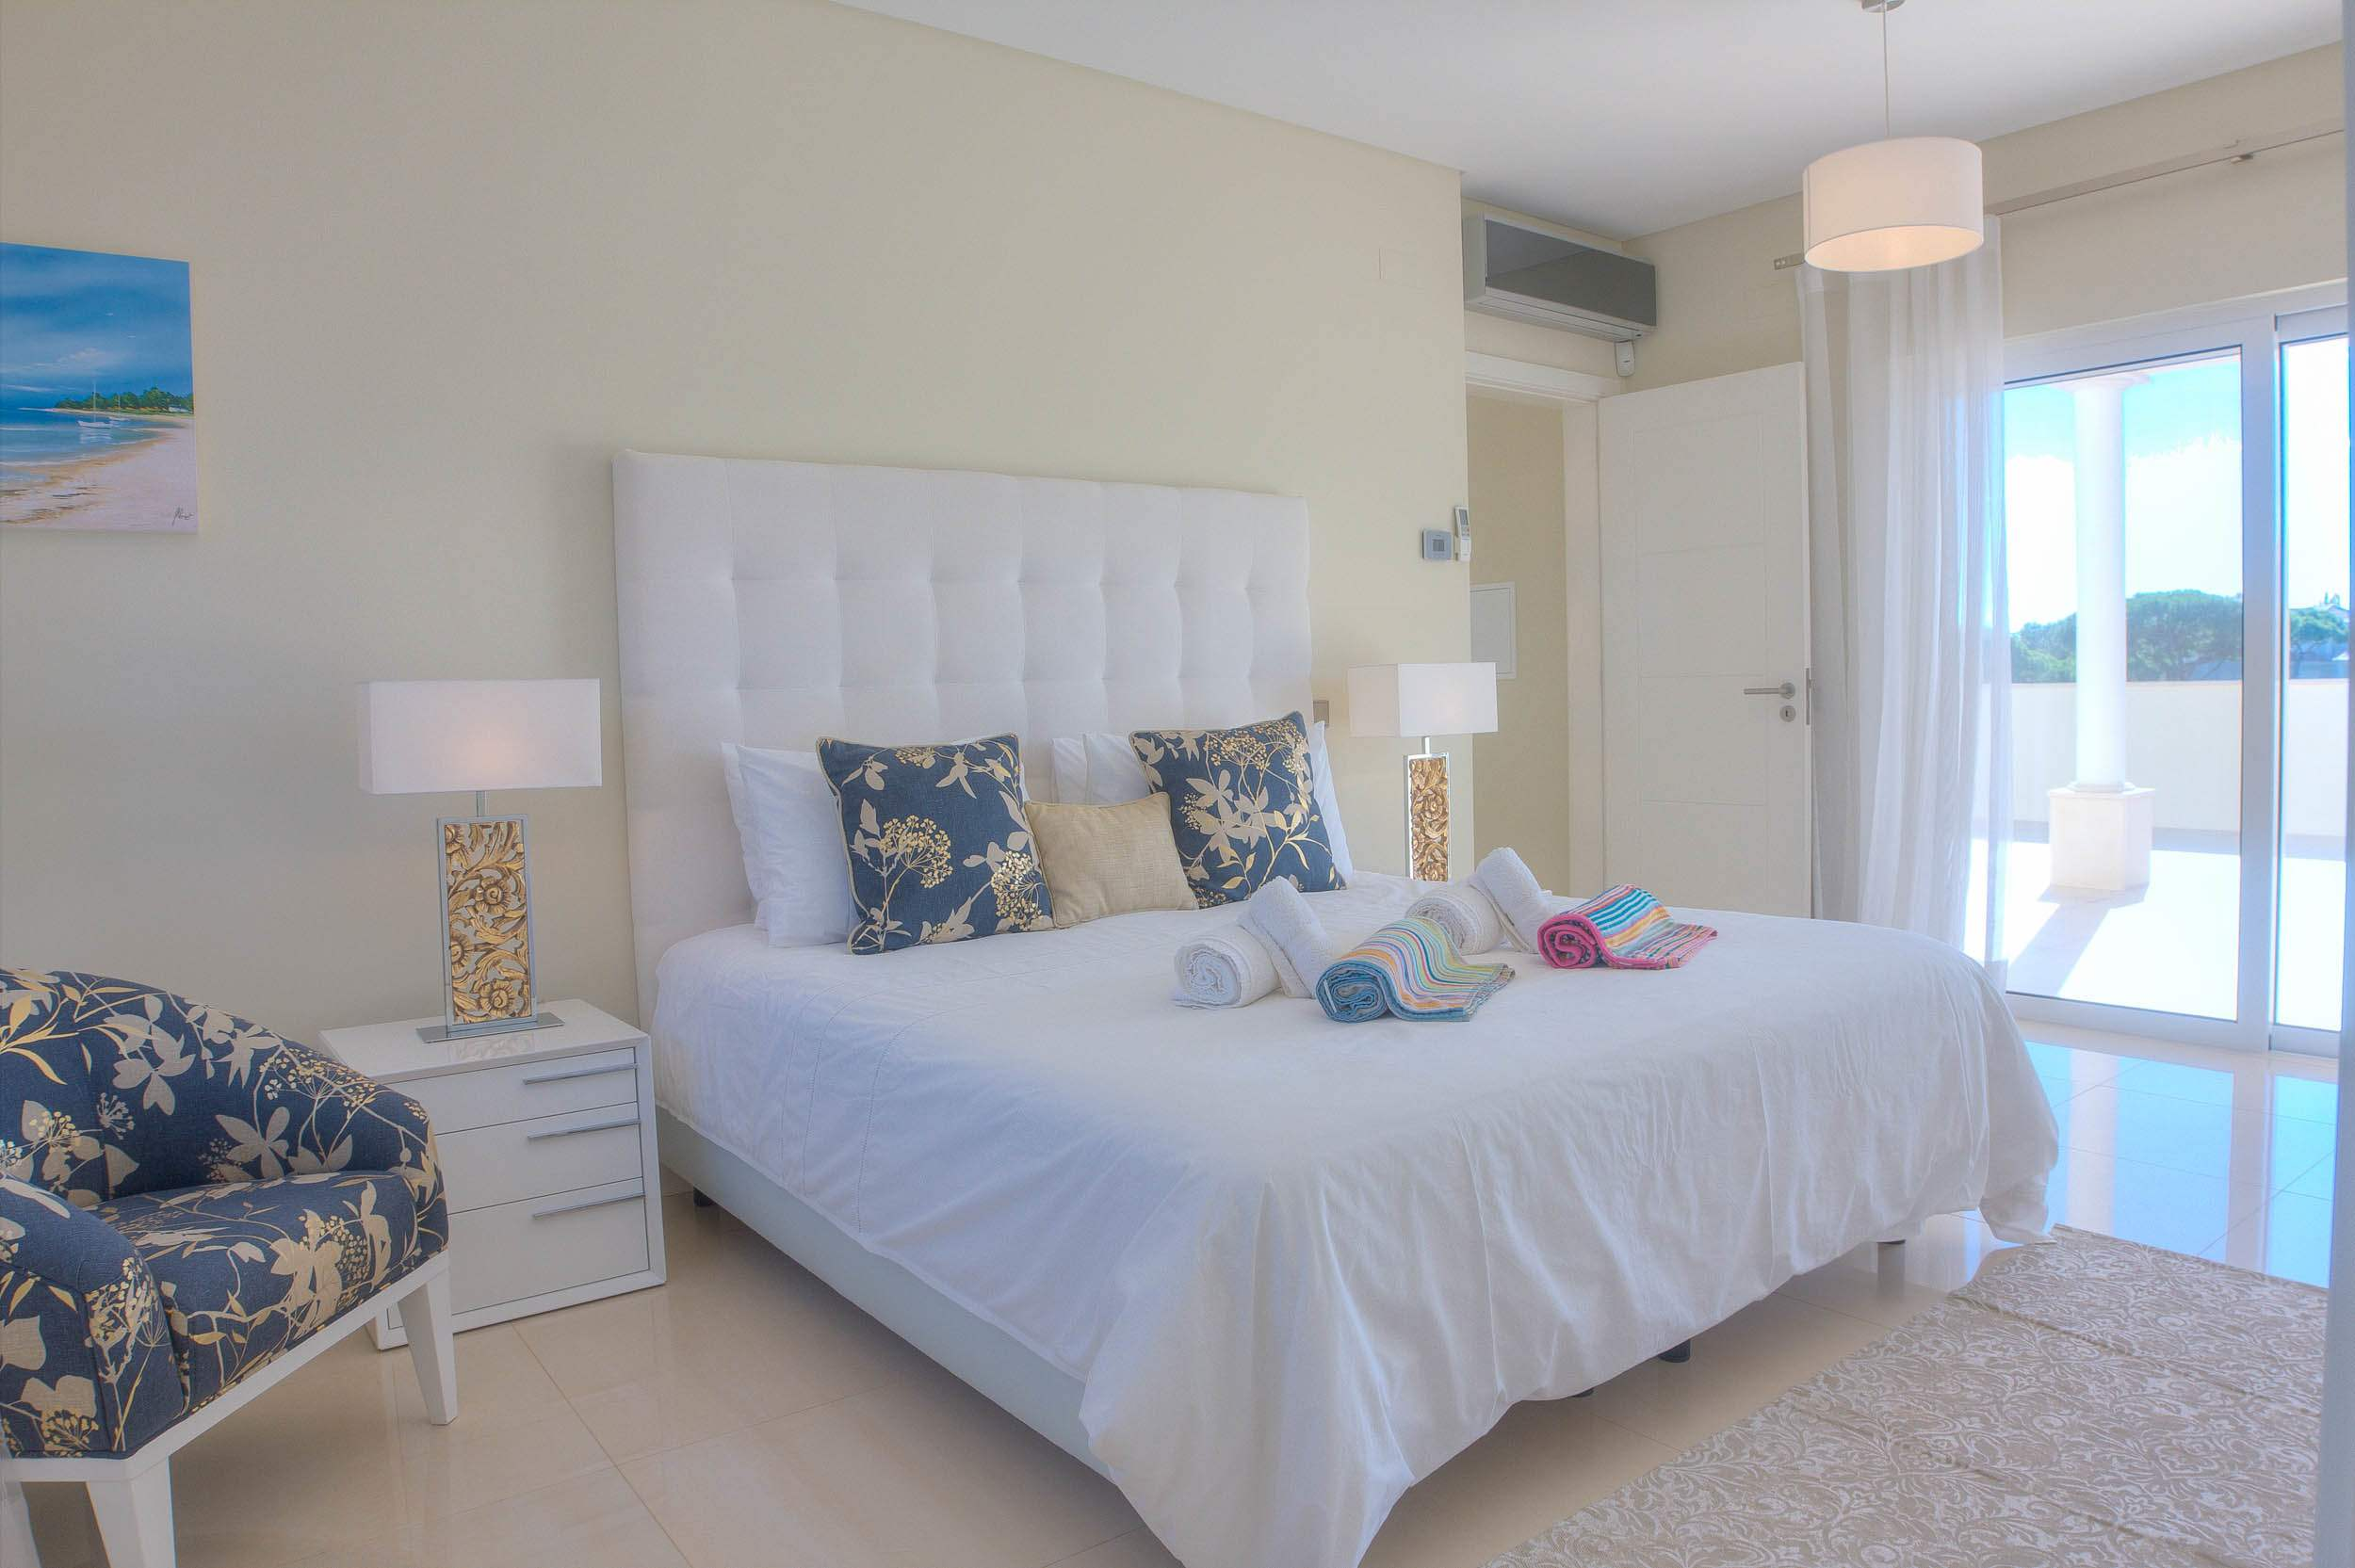 Villa Vida Doce, 6 bedroom villa in Vilamoura Area, Algarve Photo #23